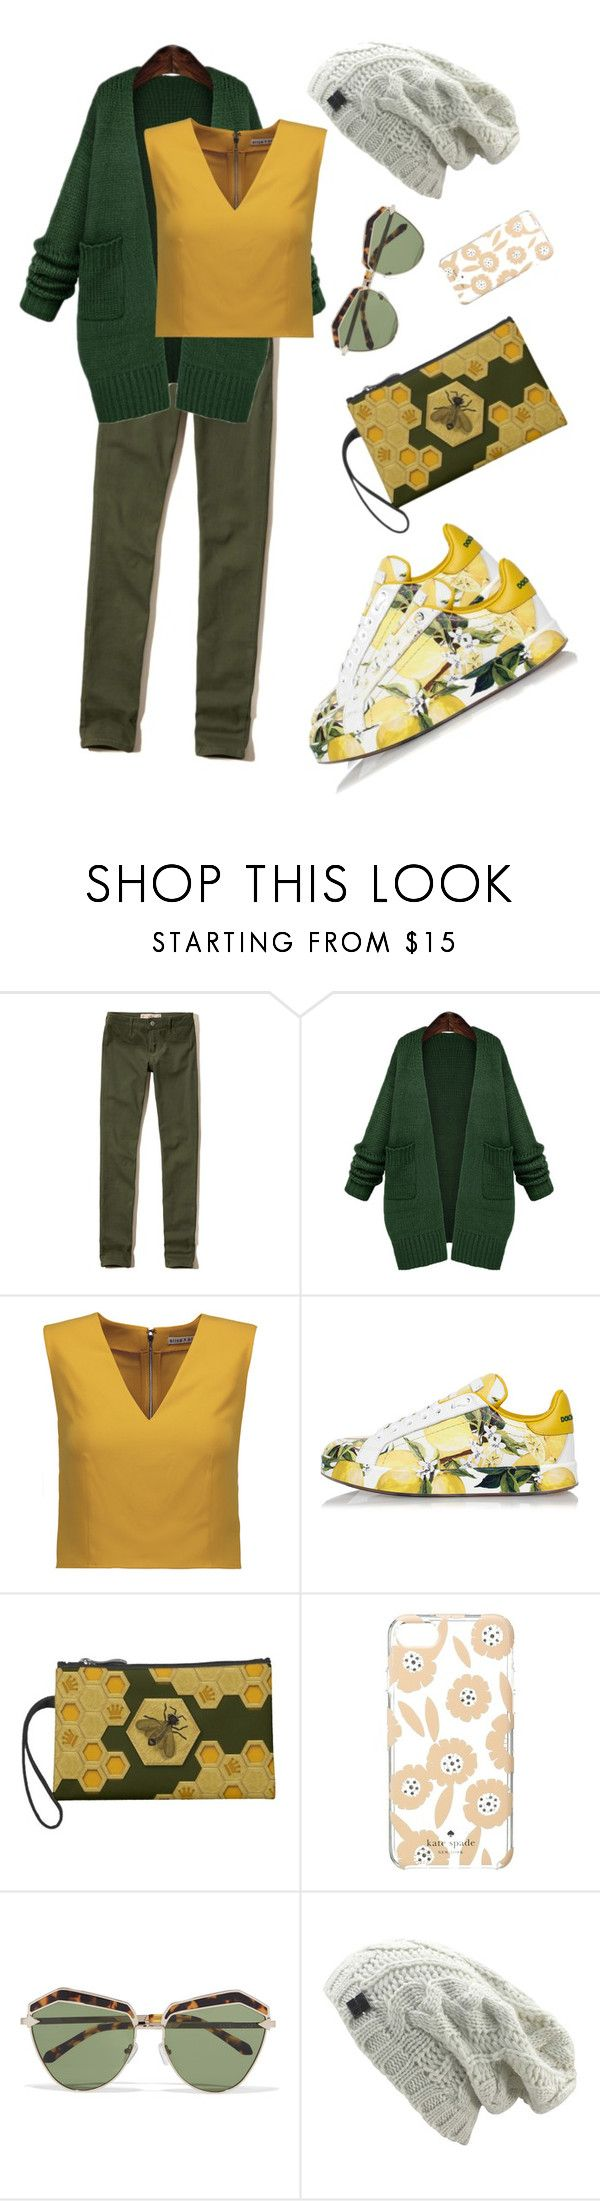 """Природный стиль"" by natalya-kuznetsova ❤ liked on Polyvore featuring Hollister Co., WithChic, Alice + Olivia, Dolce&Gabbana, Queen Bee, Kate Spade and Karen Walker"